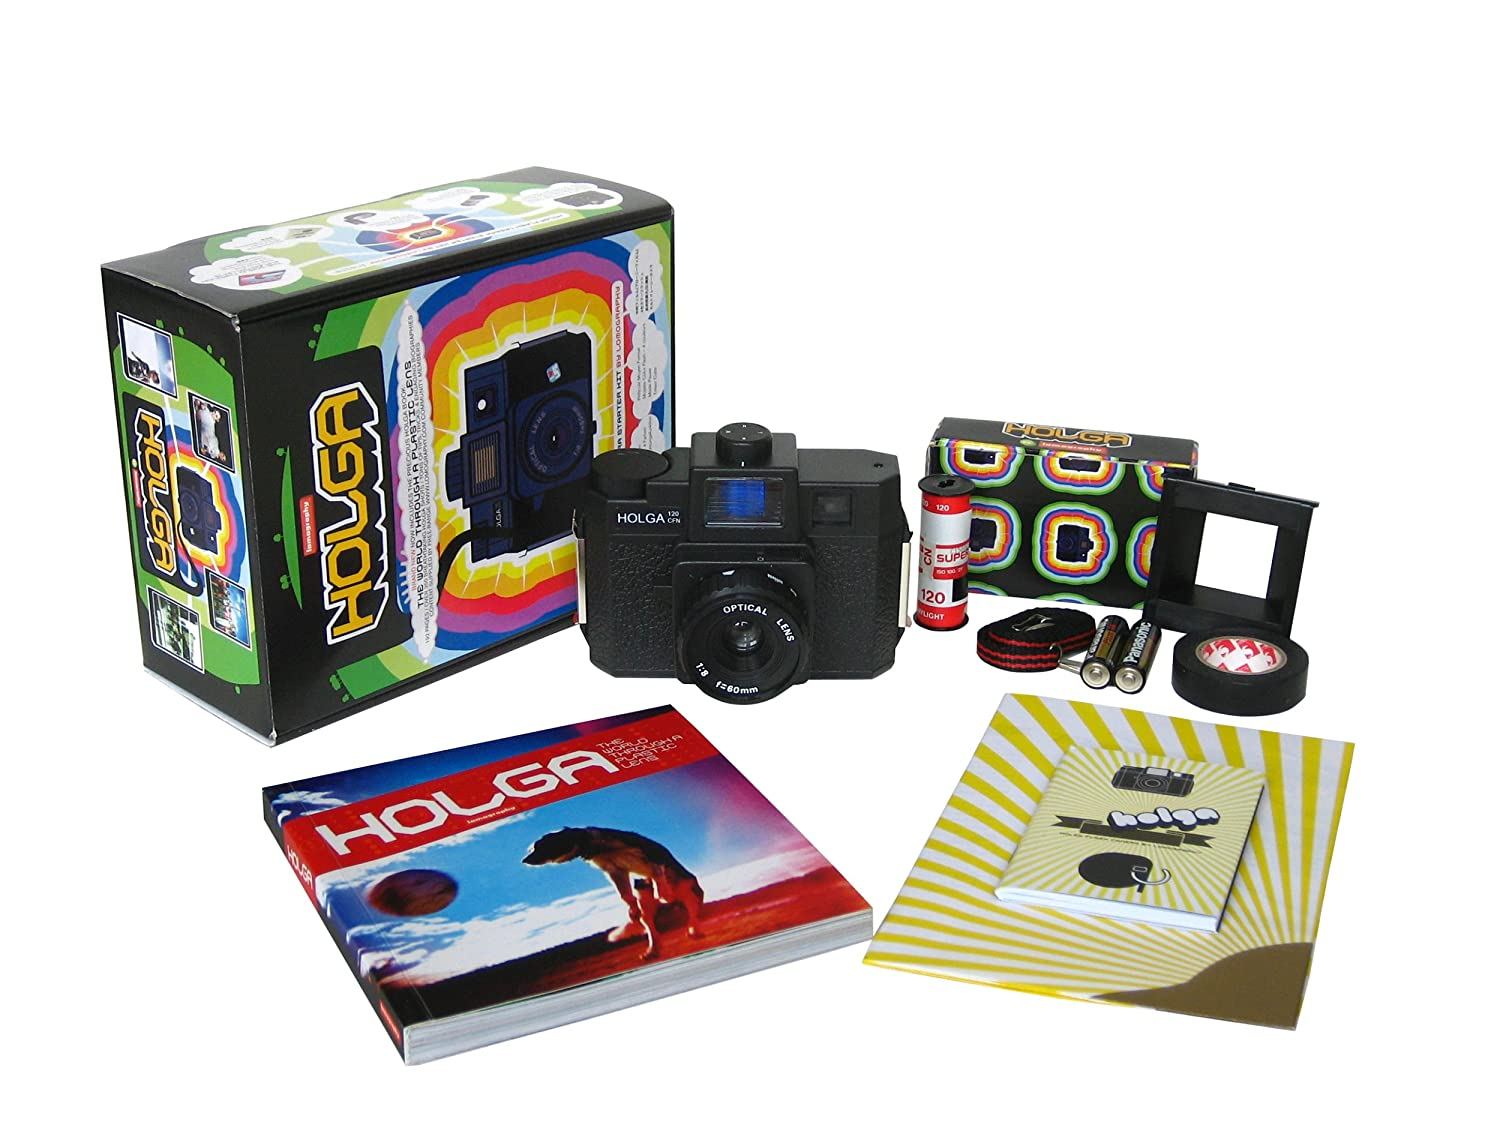 Amazon.com : Lomographic Holga Starter Kit : Single Use Film ...